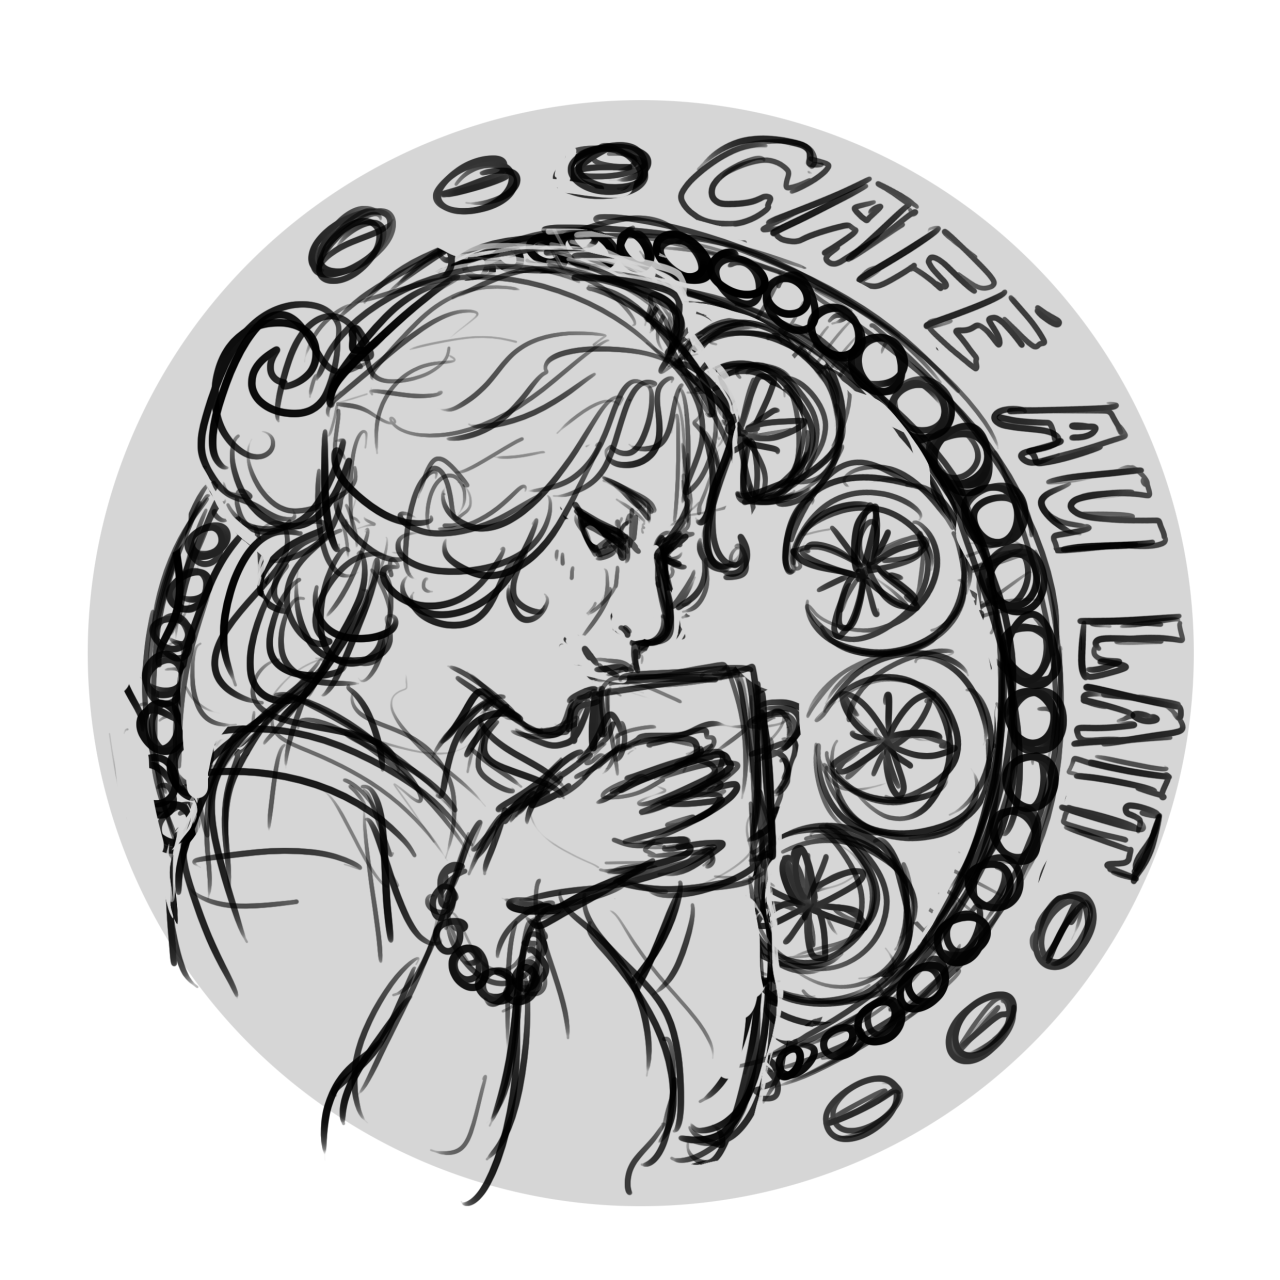 One of the initial ideas for the Cafe AU Lait coasters was something a bit art nouveau-y… Because Nouveau is sorta associated with romance and Mucha is somewhat known for his hot chocolate advertisements so it's SORT OF related… But ultimately we dropped the idea because it's not quite relevant enough. Nice enough sketches though! In the end we went with the simple but cute coffee bean heart design that you see over at the Kickstarter! :) https://www.kickstarter.com/projects/557383328/cafe-au-lait-comics-anthology #sketch#art nouveau #cafe au lait